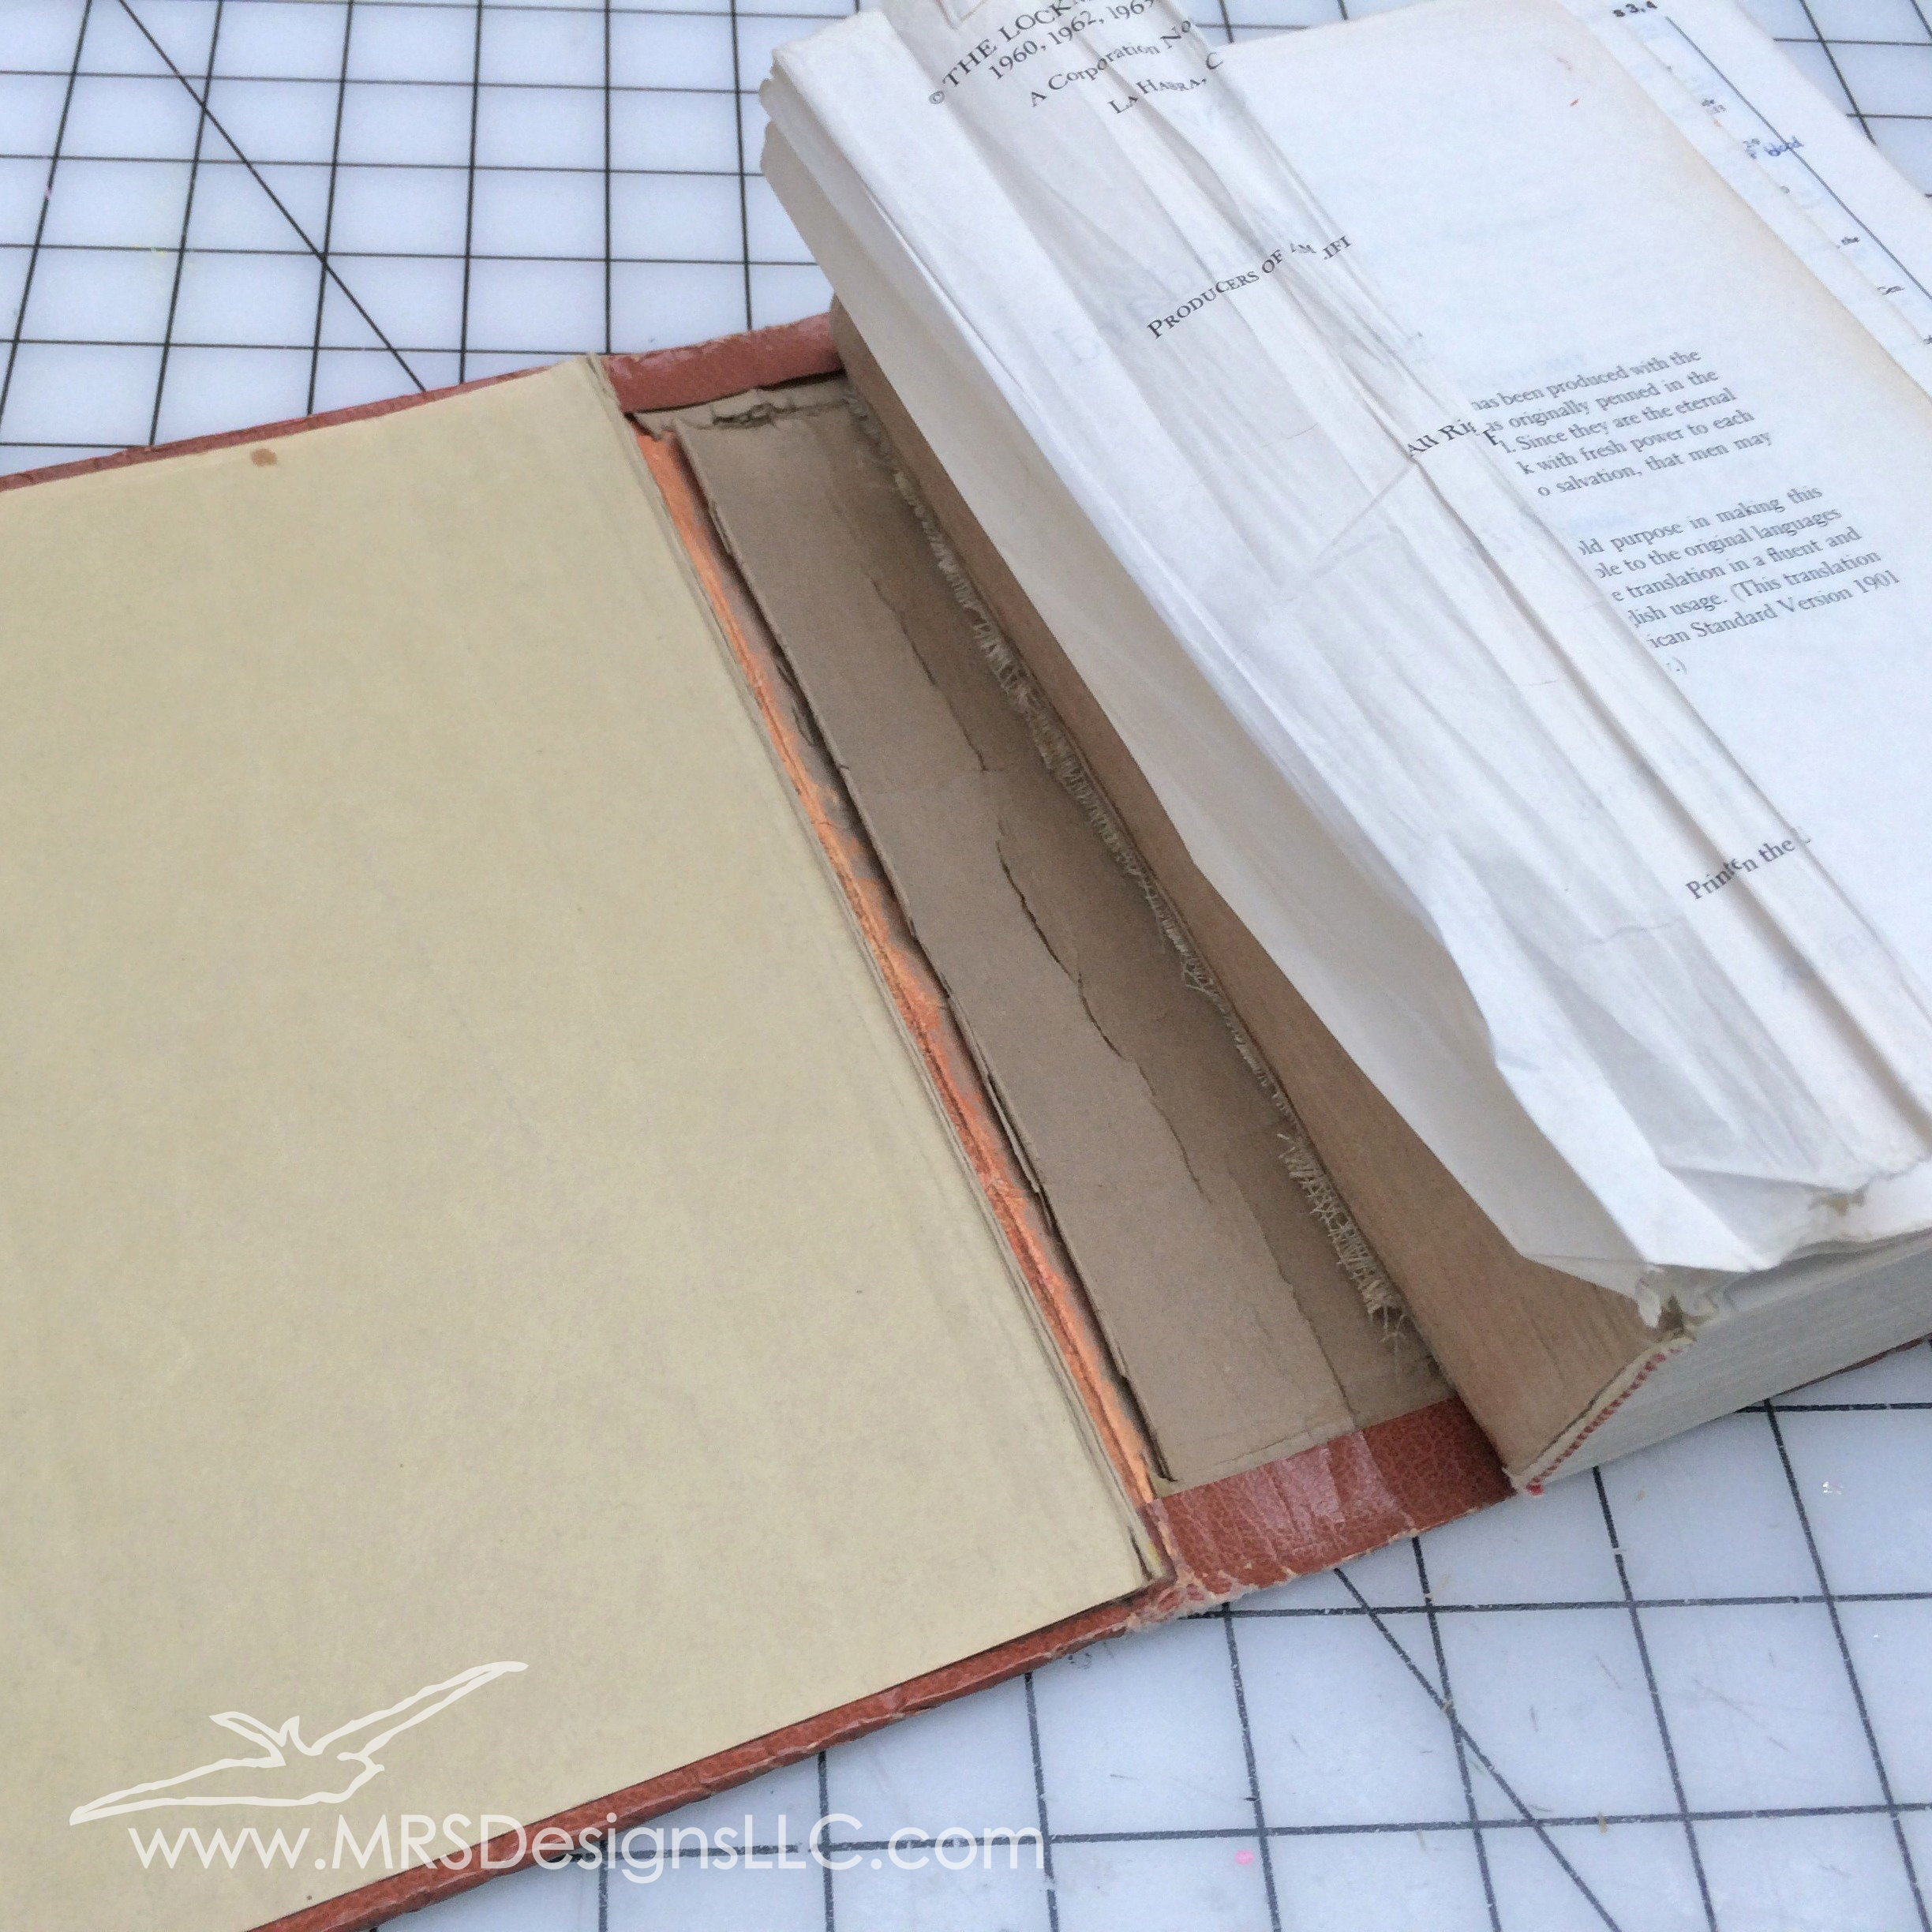 MRS Designs Blog - Paint and Decoupage an Old Book Cover, Inside View.jpg